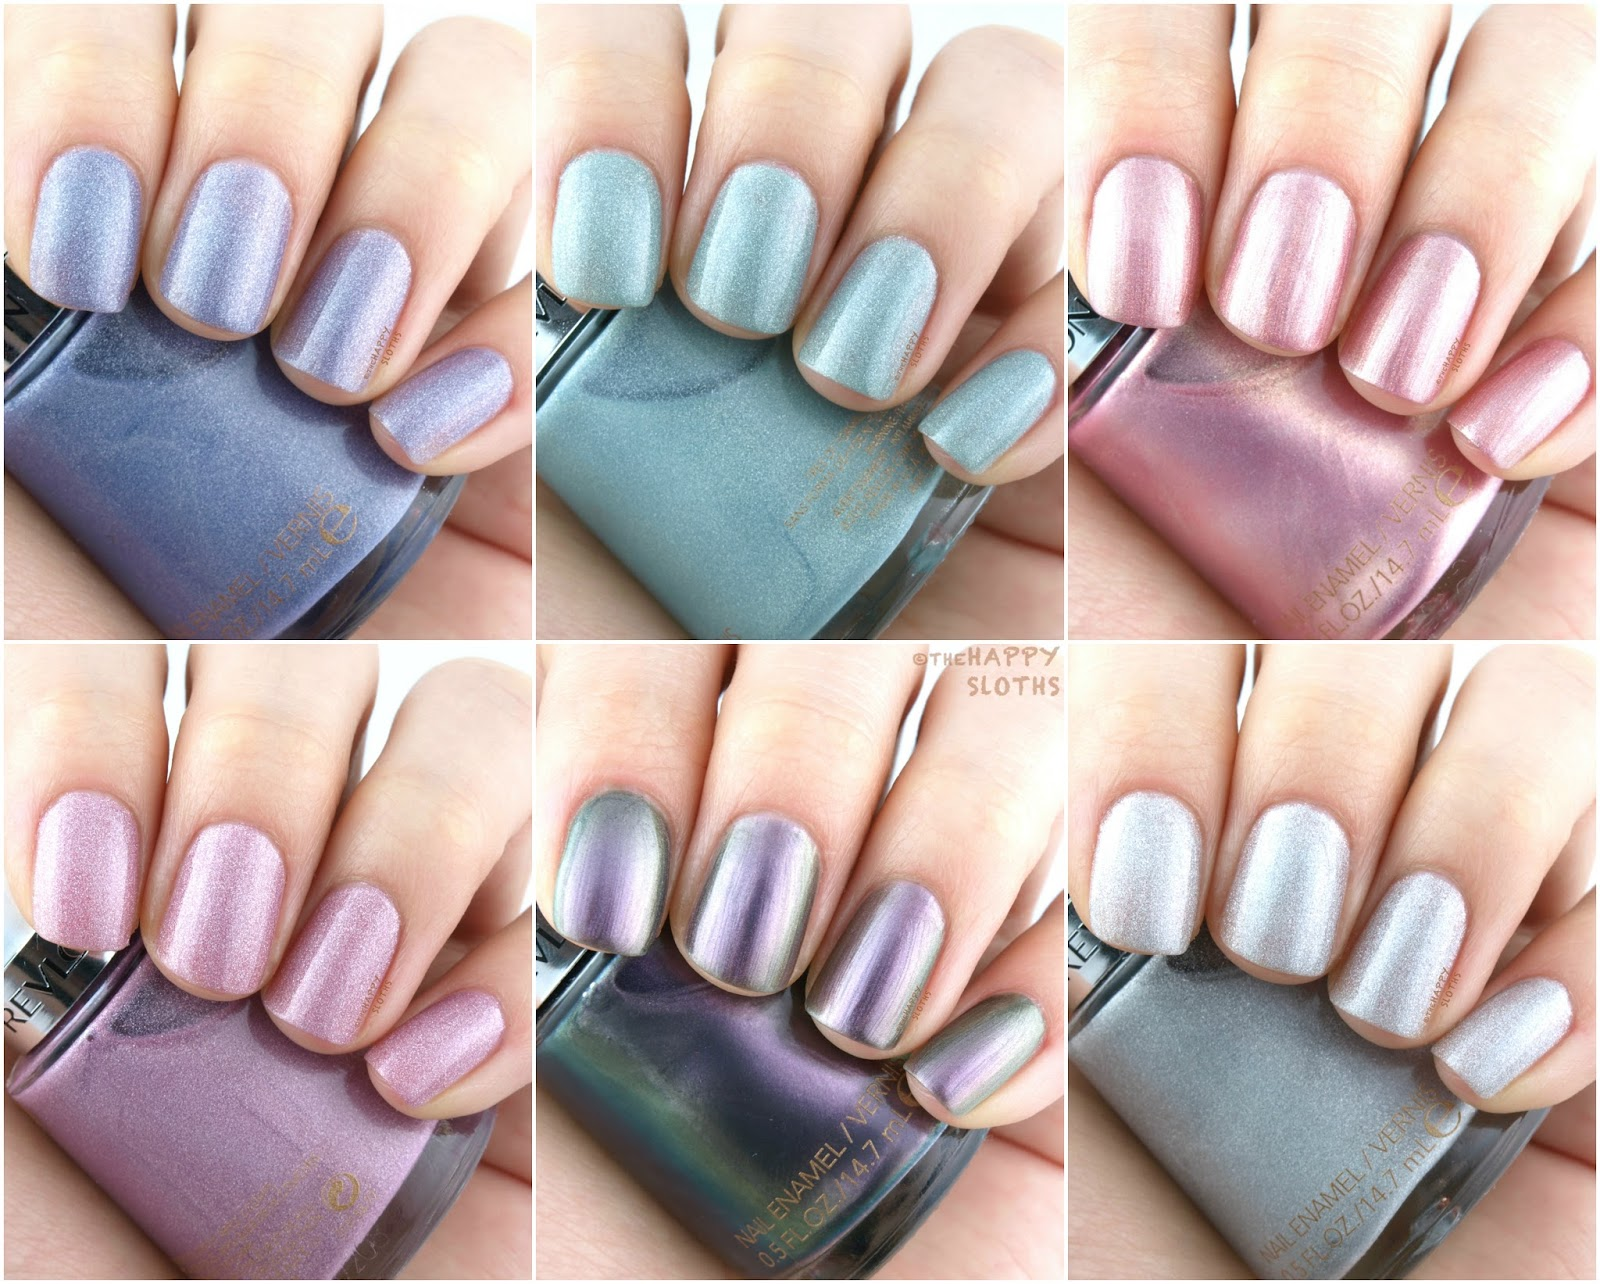 Revlon Holochrome Nail Polish Collection: Review and Swatches